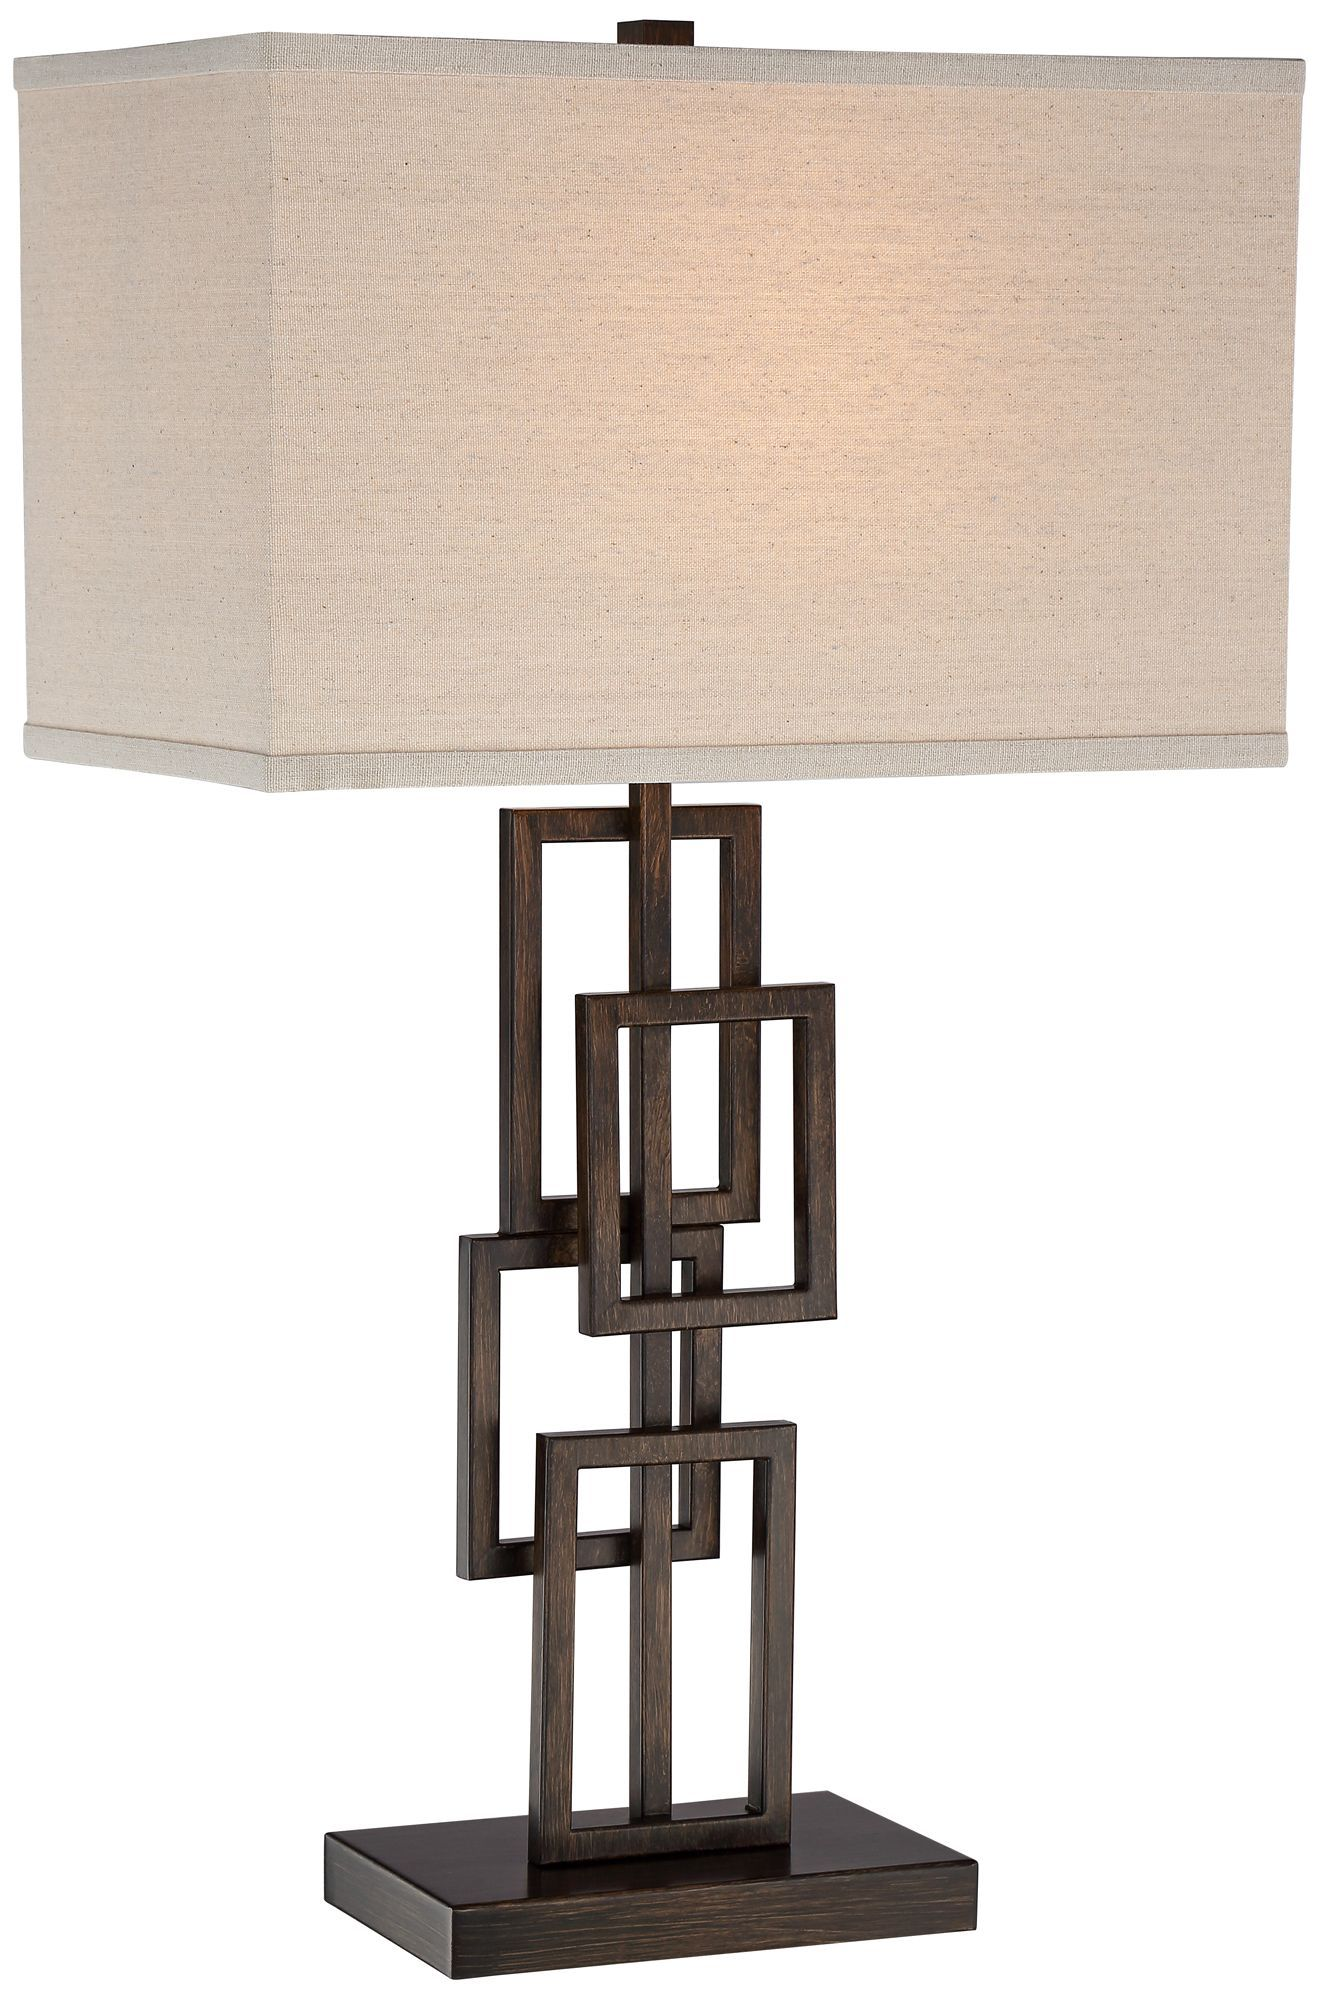 Kory stacked rectangles dark bronze metal table lamp lighting kory stacked rectangles dark bronze metal table lamp geotapseo Gallery